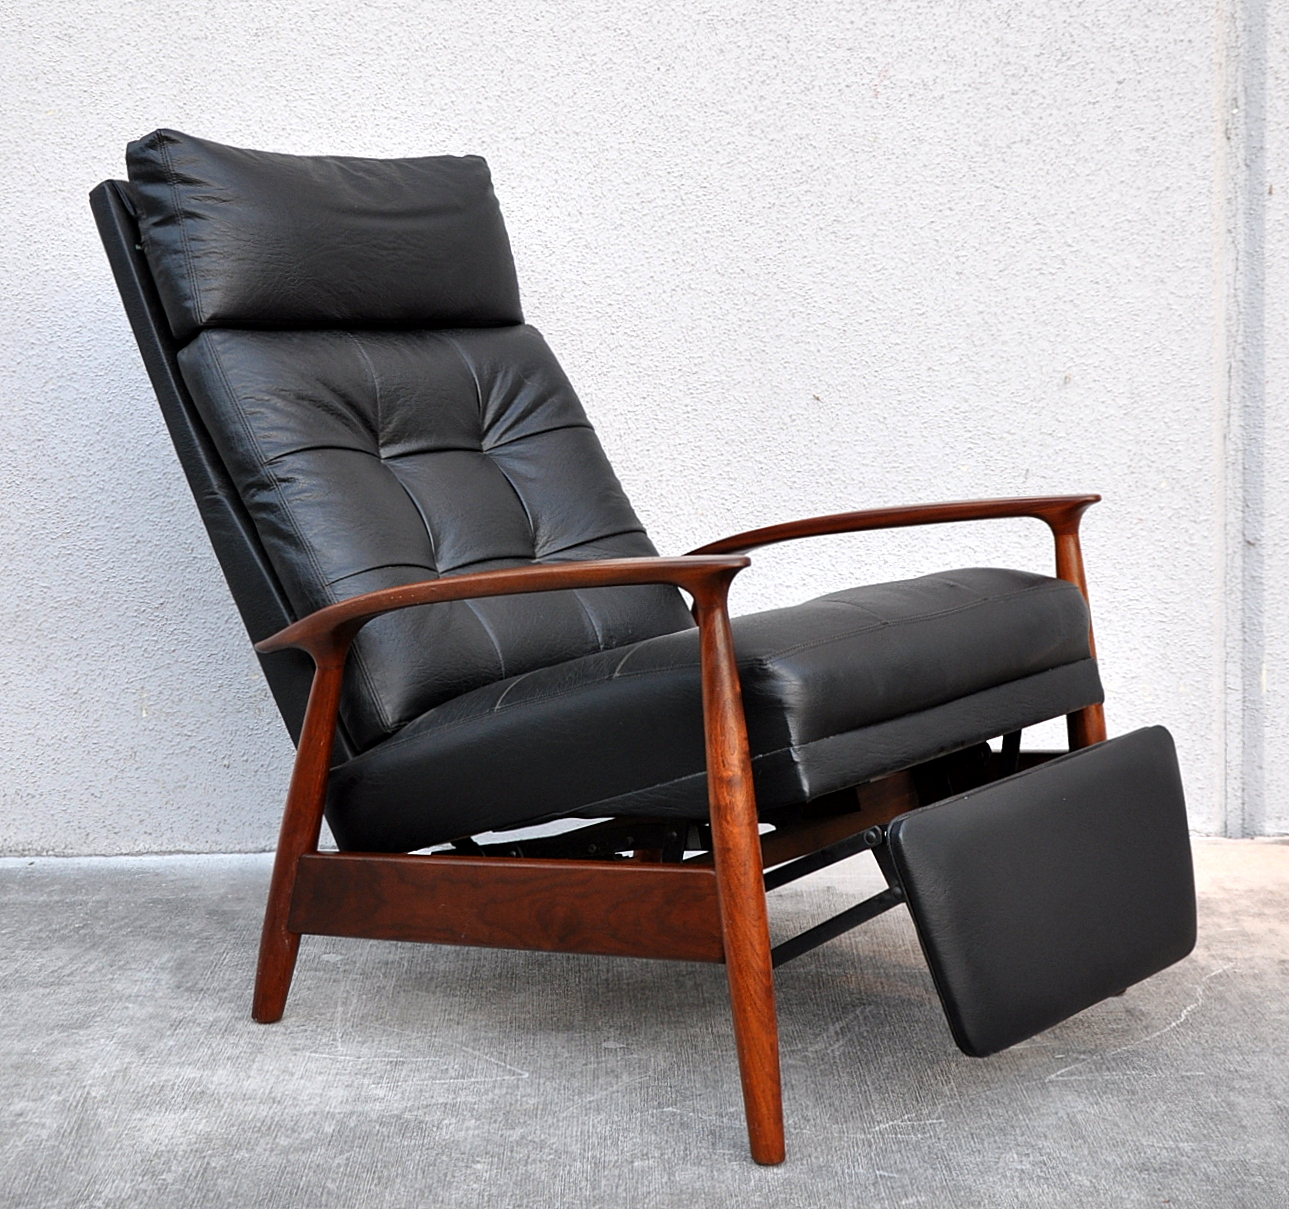 Designer Chair: SELECT MODERN